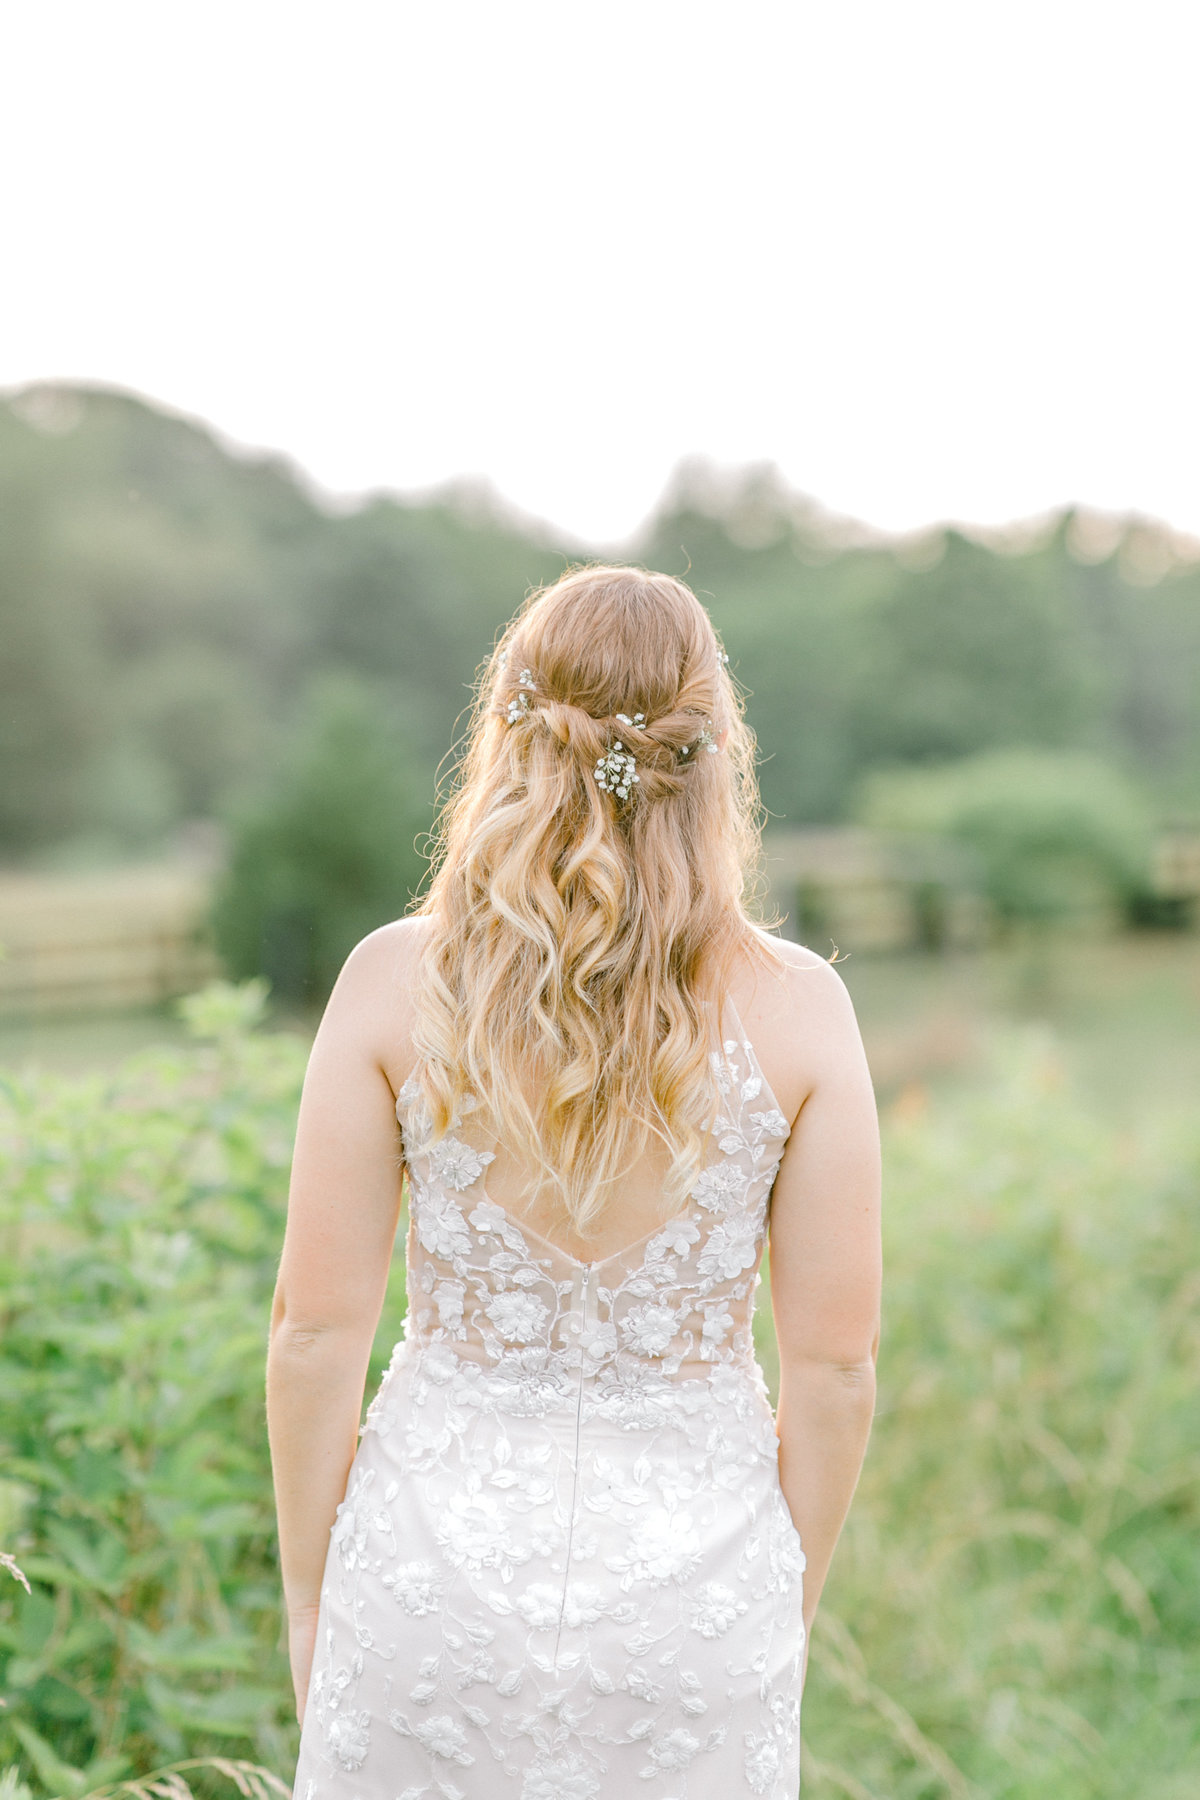 Bridal_Portraits-31